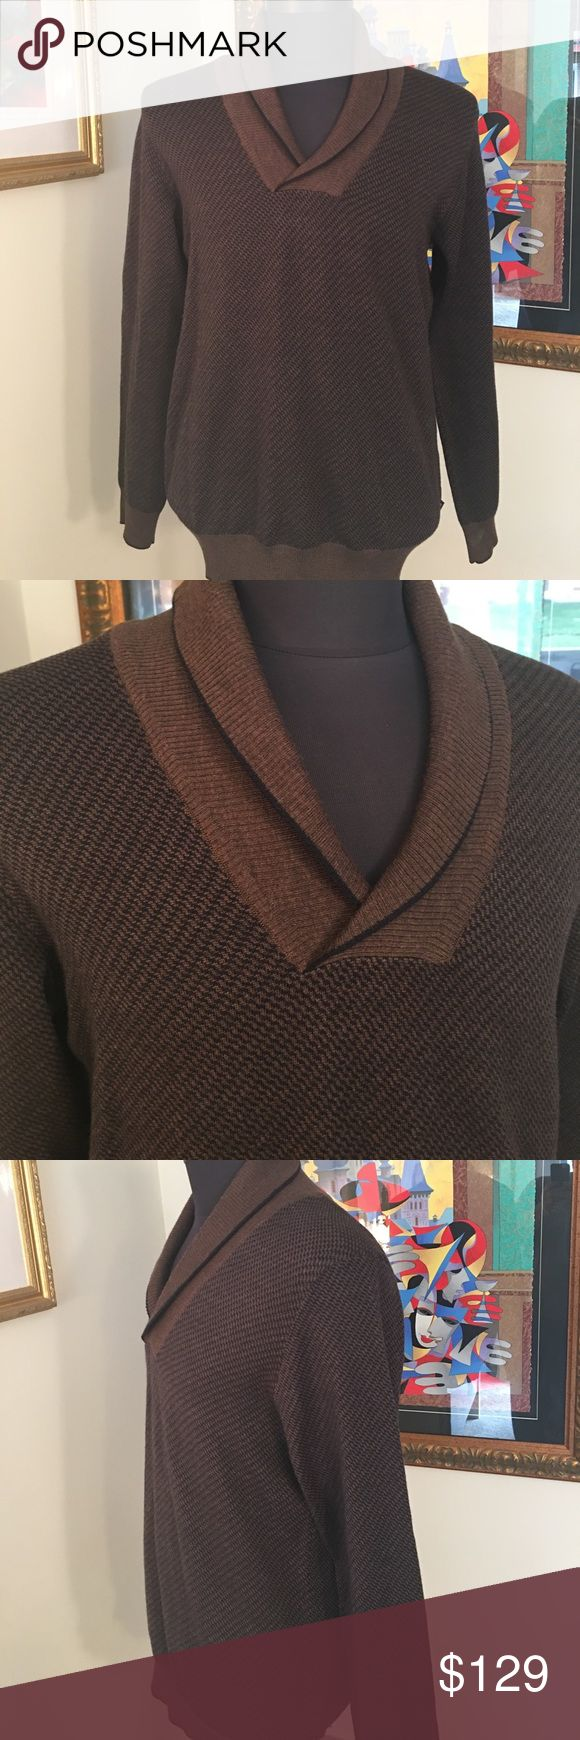 🆕HUGO BOSS MENS WOOL SWEATER 💯AUTHENTIC HUGO BOSS NEW MENS BROWN AND BLACK WOOL SWEATER 100% AUTHENTIC. TRUE HIGH END LUXURY AND STYLE. PURCHASED AND NEVER WORE IT! WHAT A HREAT SWEATER IN A SIZE LARGE! Hugo Boss Sweaters